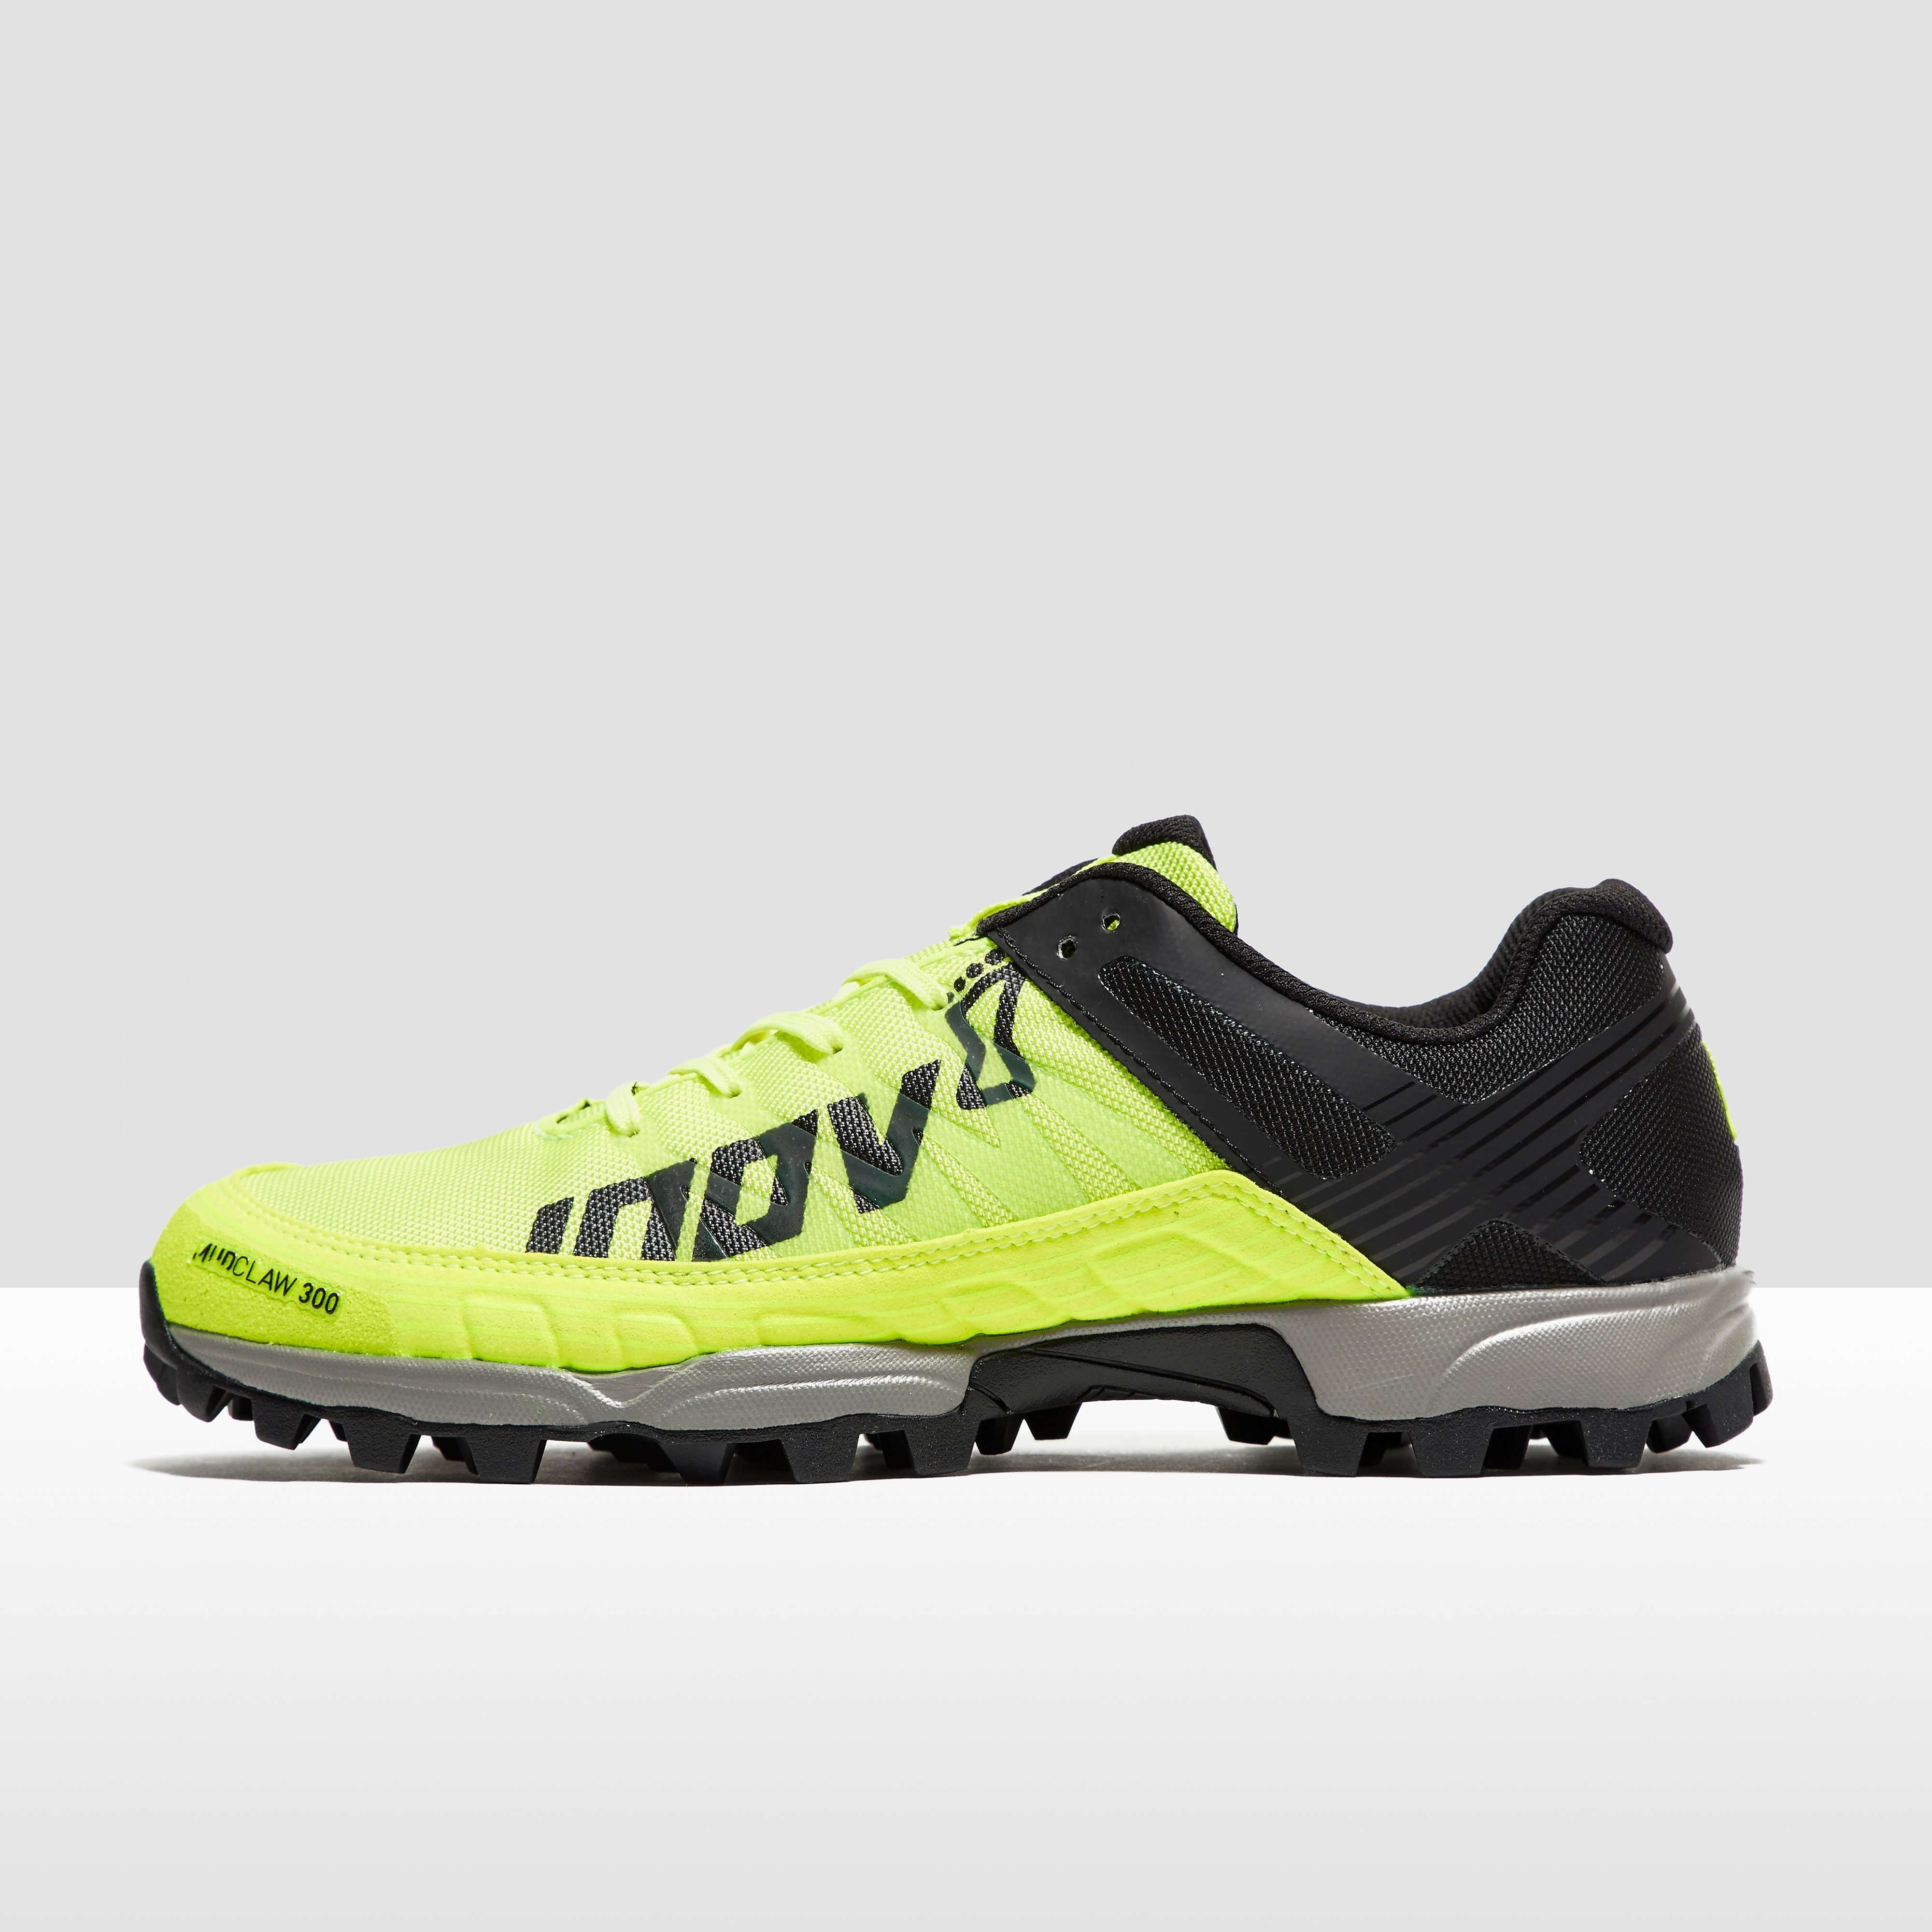 Discount Inov 8 Mudclaw 300 Trail Yellow Running Shoes for Men Online